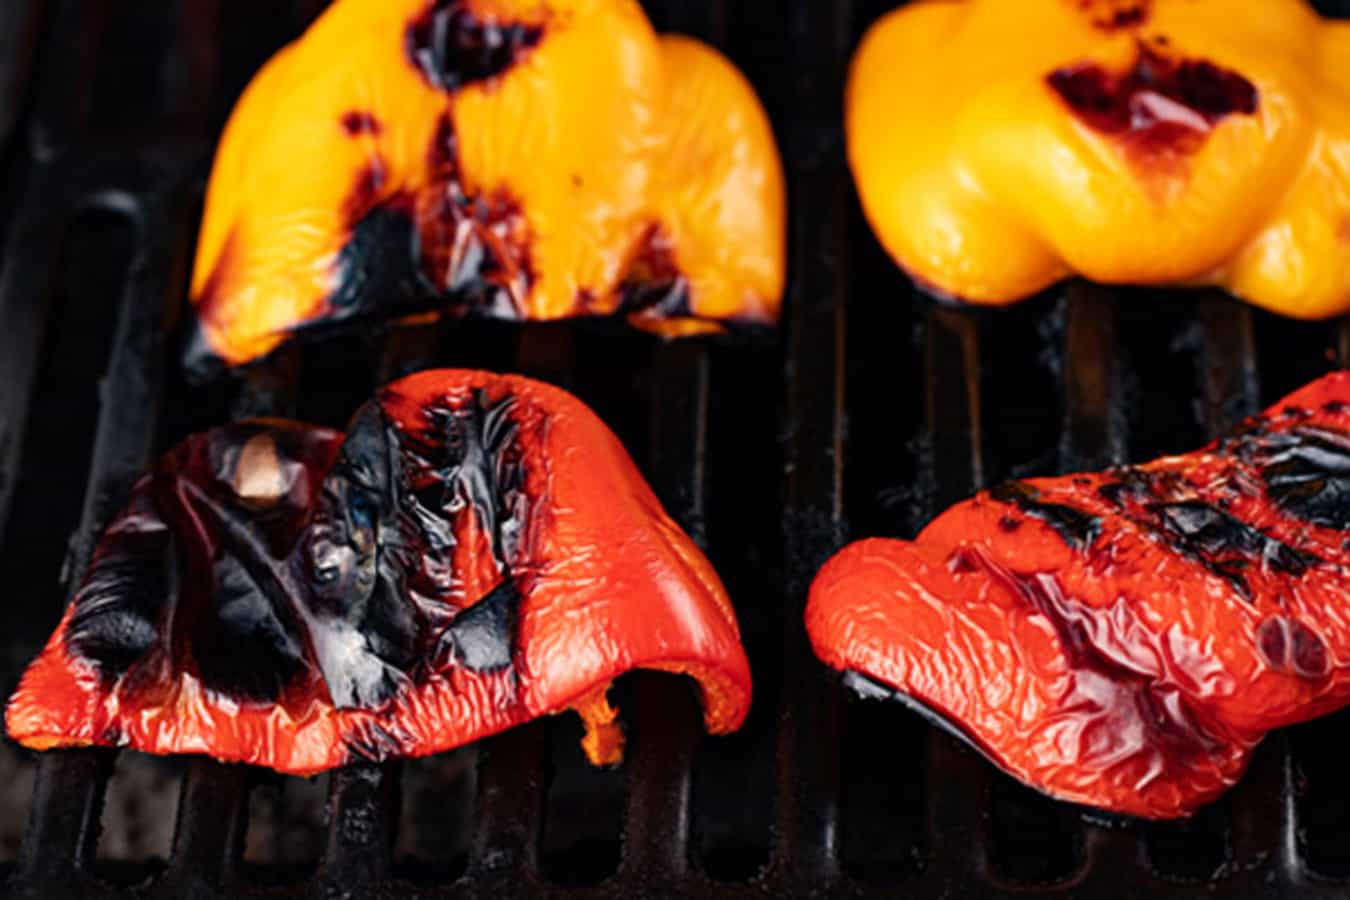 roasted red bell peppers on grill